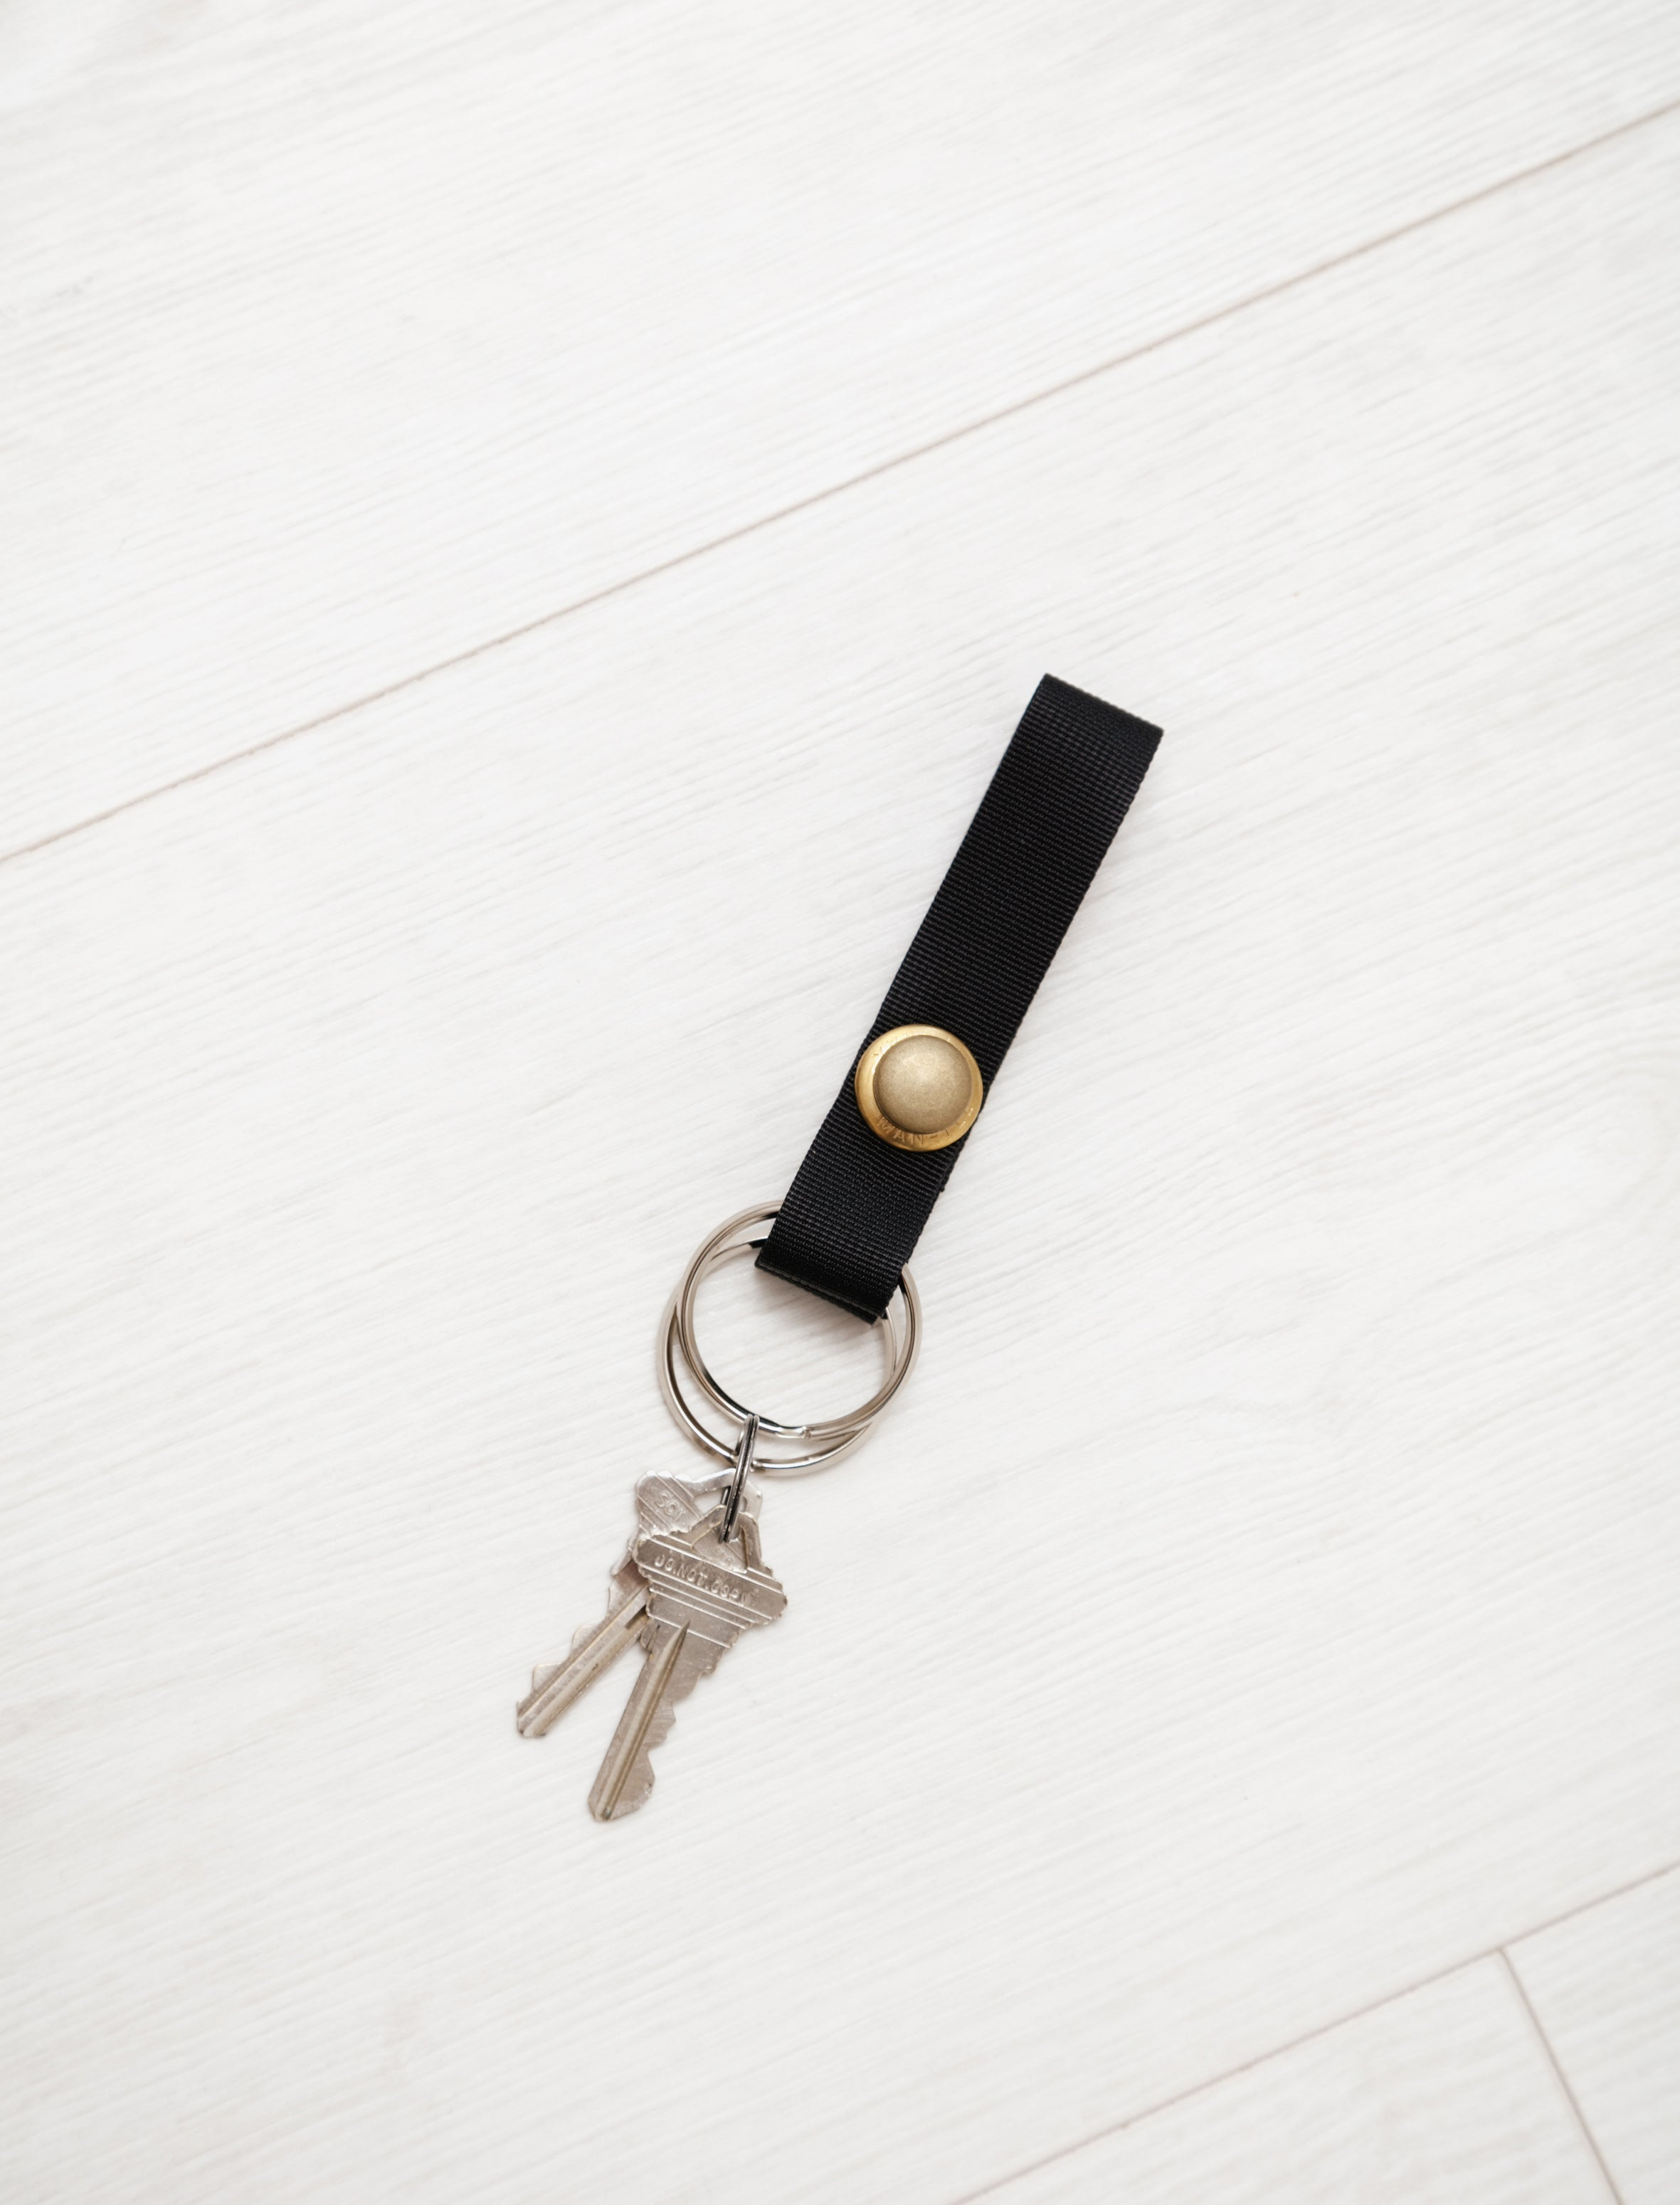 MAN-TLE Short Snap Keyring Black Brass